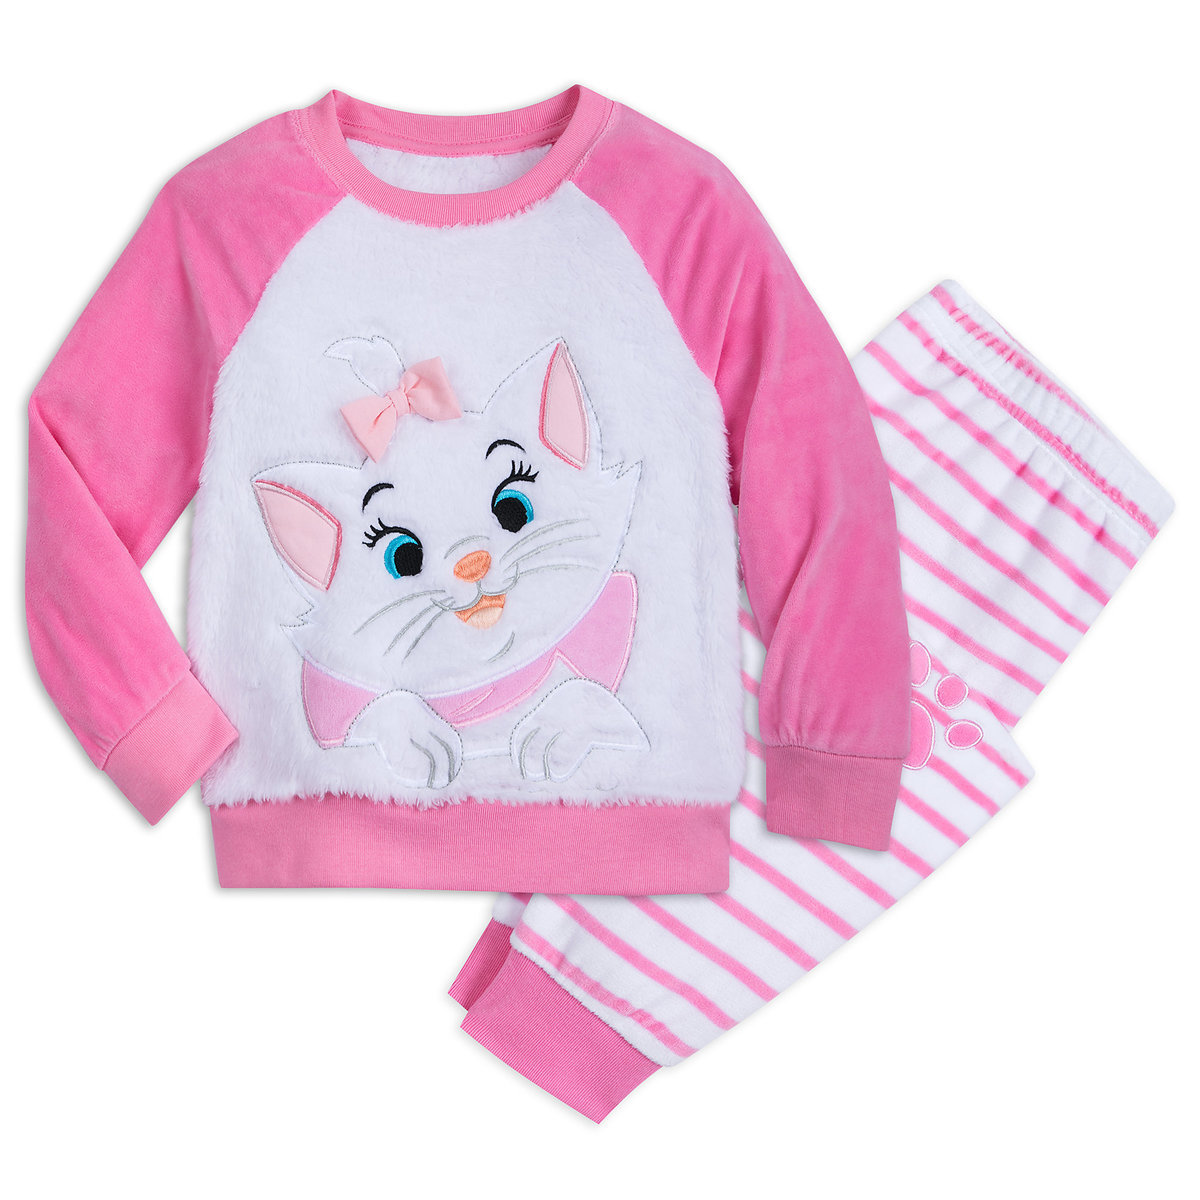 2f098731 Product Image of Marie Fuzzy Pajama Set for Kids - The Aristocats # 1